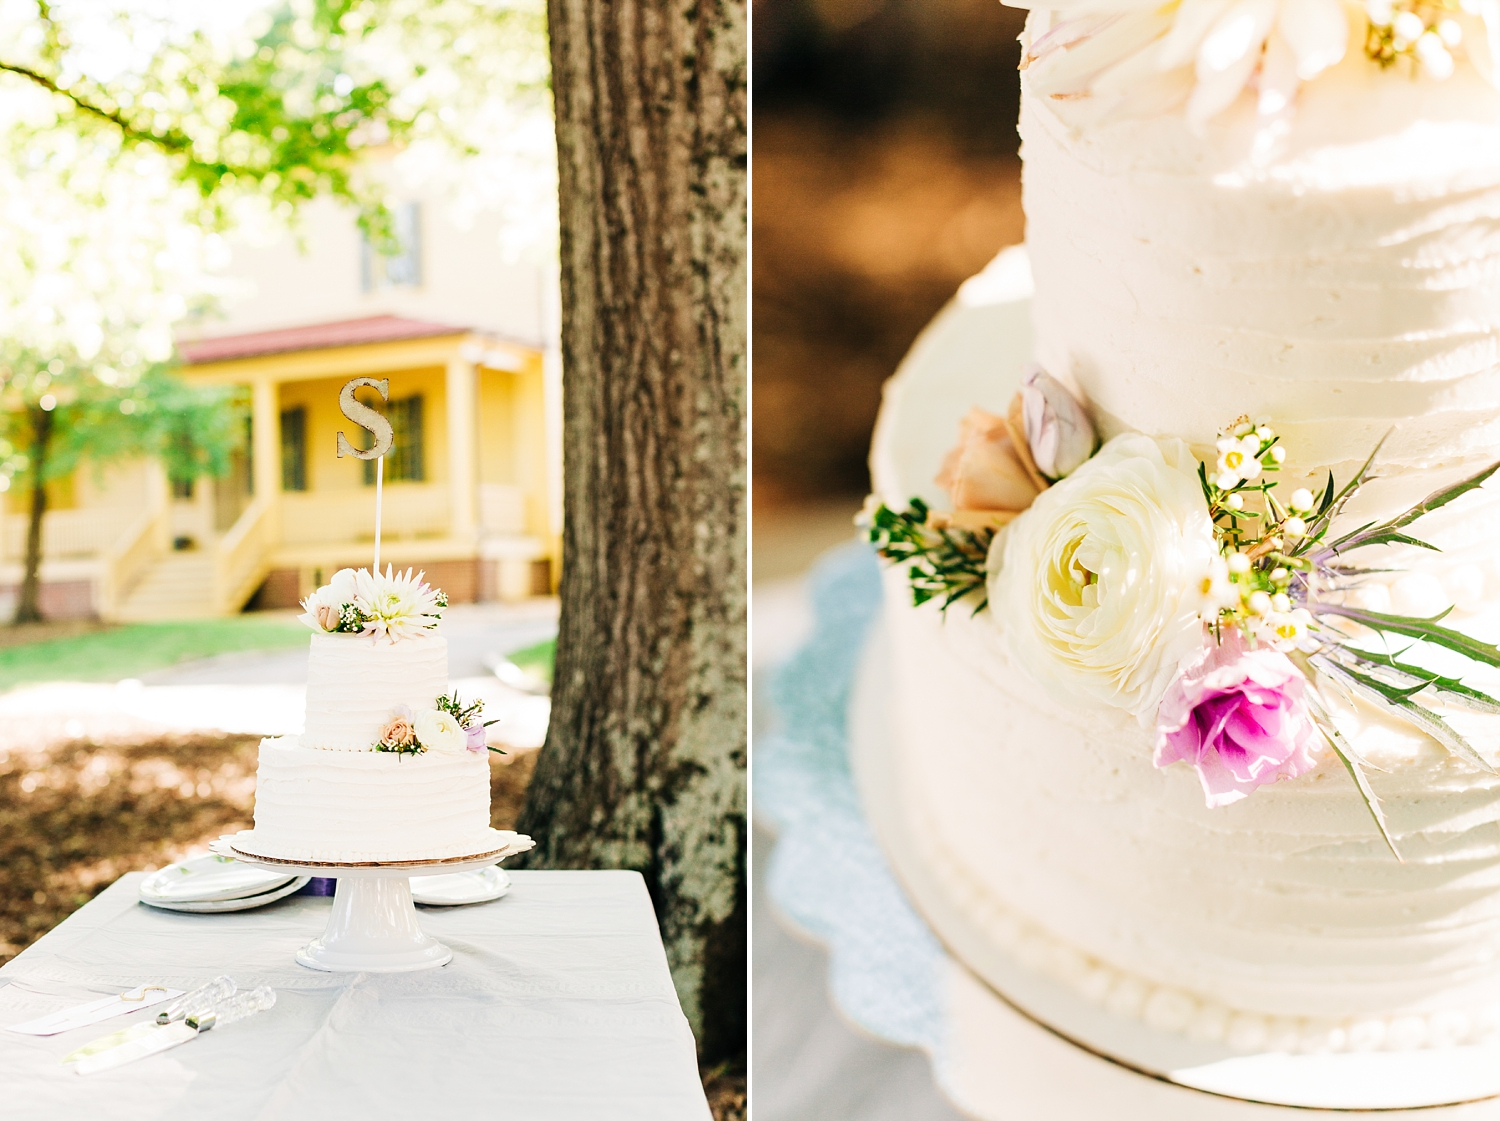 wedding-reception-outdoors-cake.jpg